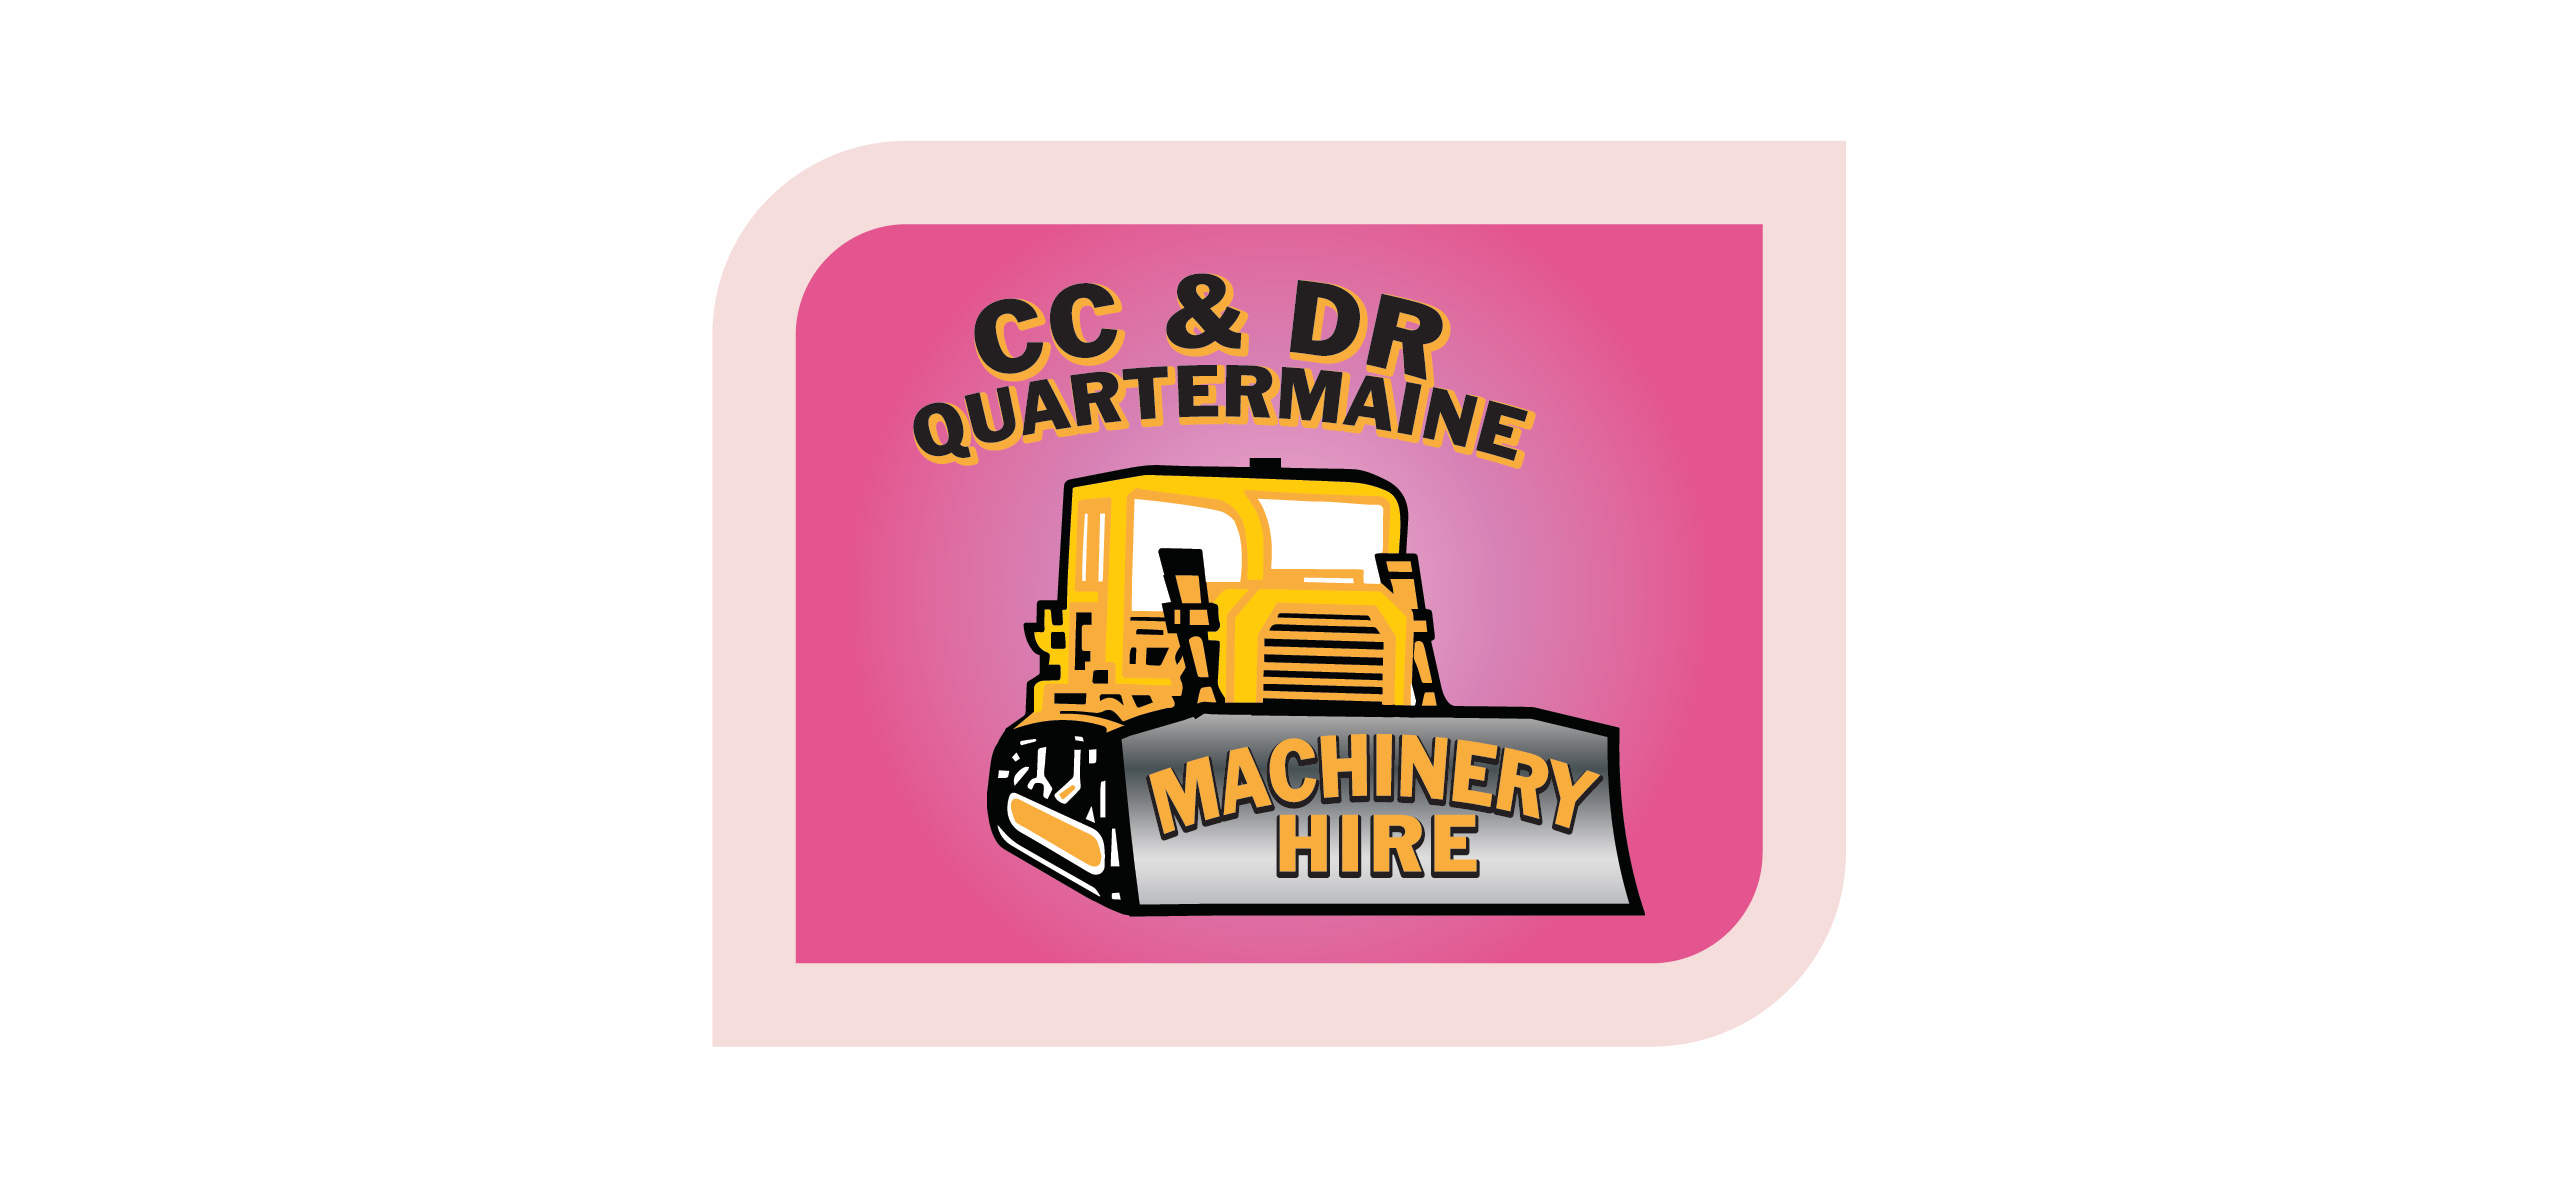 CC & DR Quartermaine Machinery Hire-1